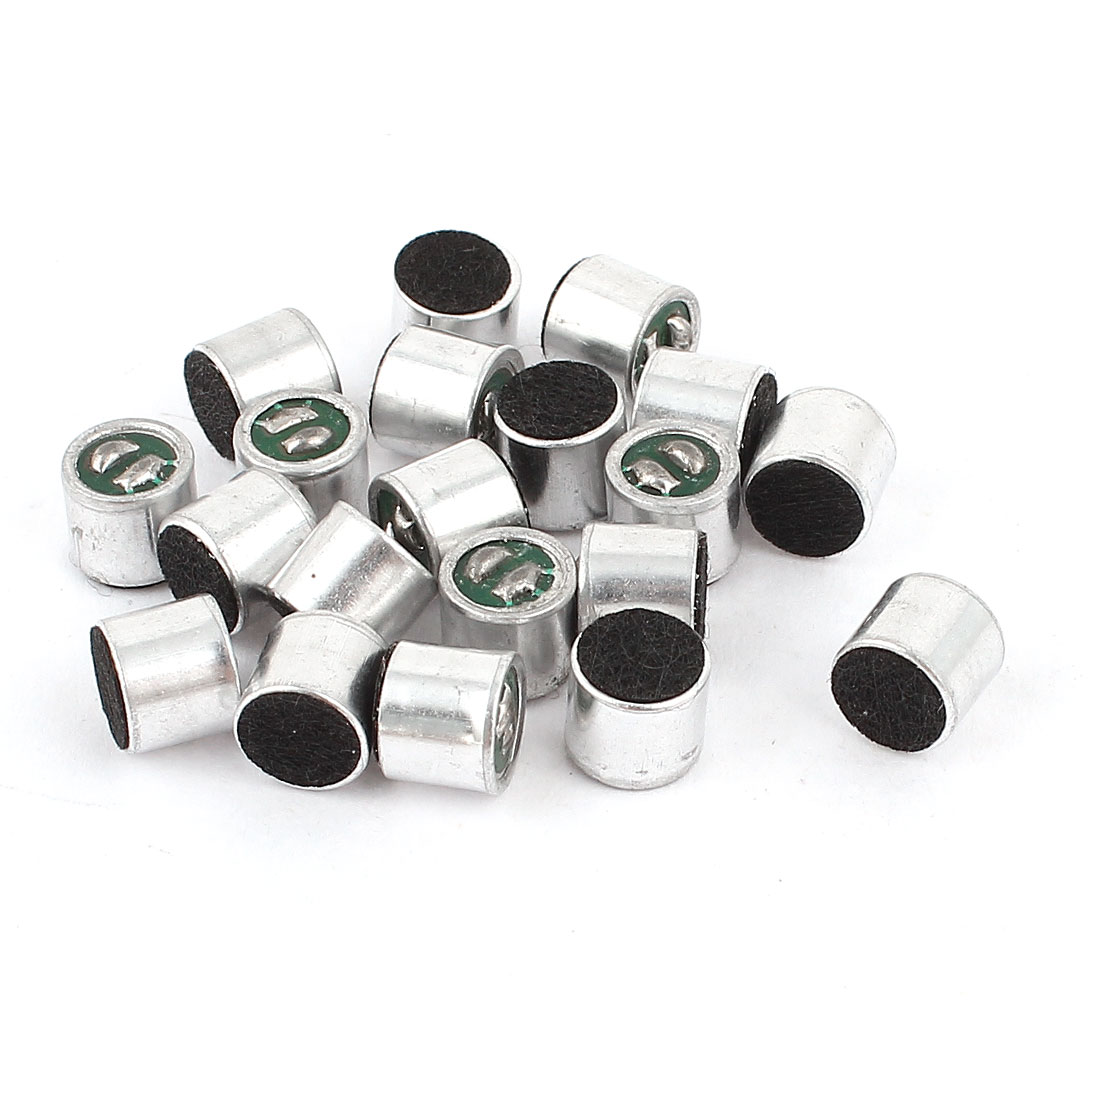 Unique Bargains 20 Pieces Cylinder Shaped SMD Electret Condenser Microphone MIC Pick-up 6mmx5mm - image 1 of 1